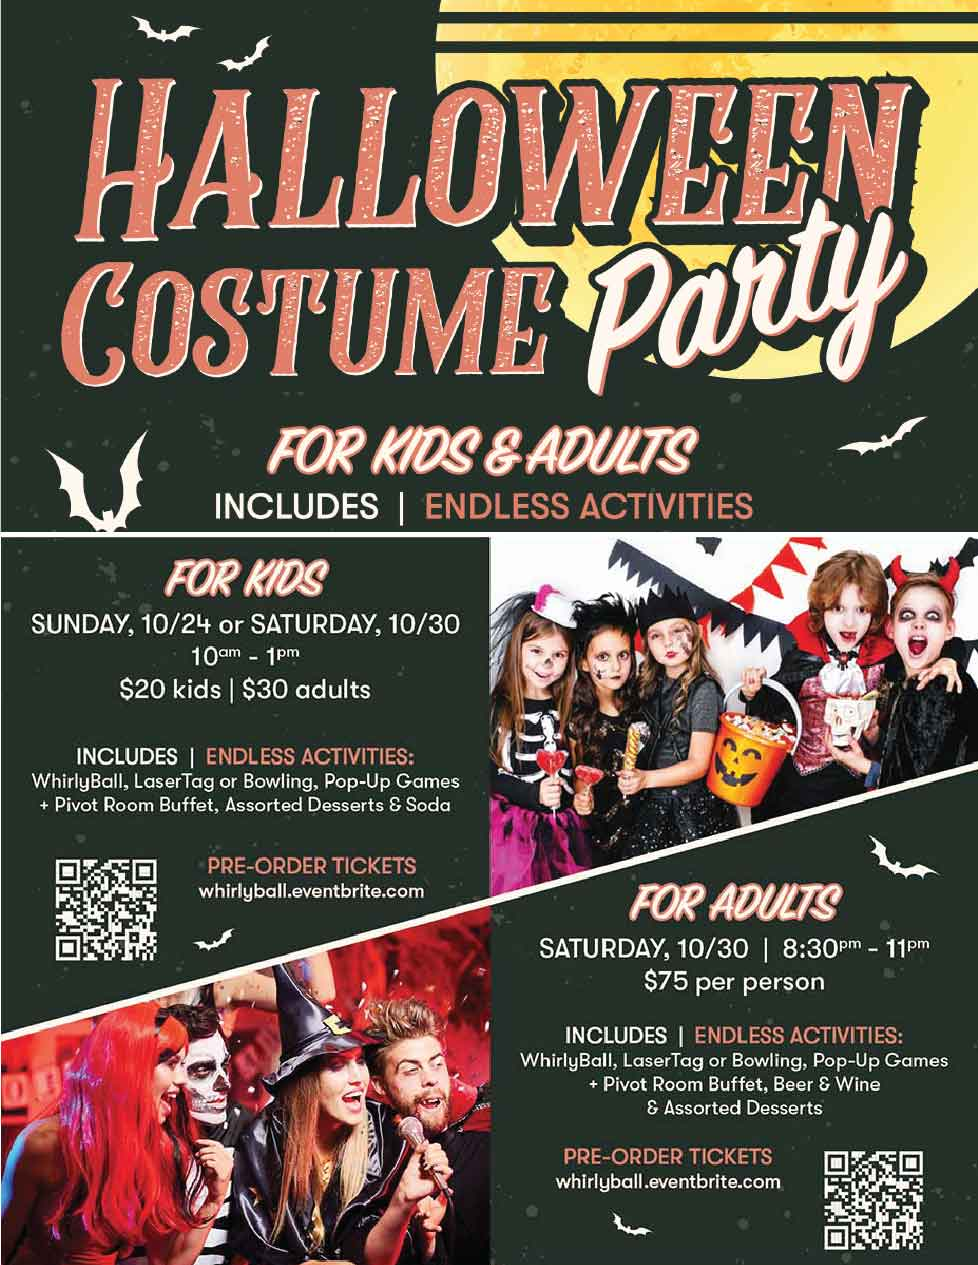 Halloween Costume Party at WhirlyBall